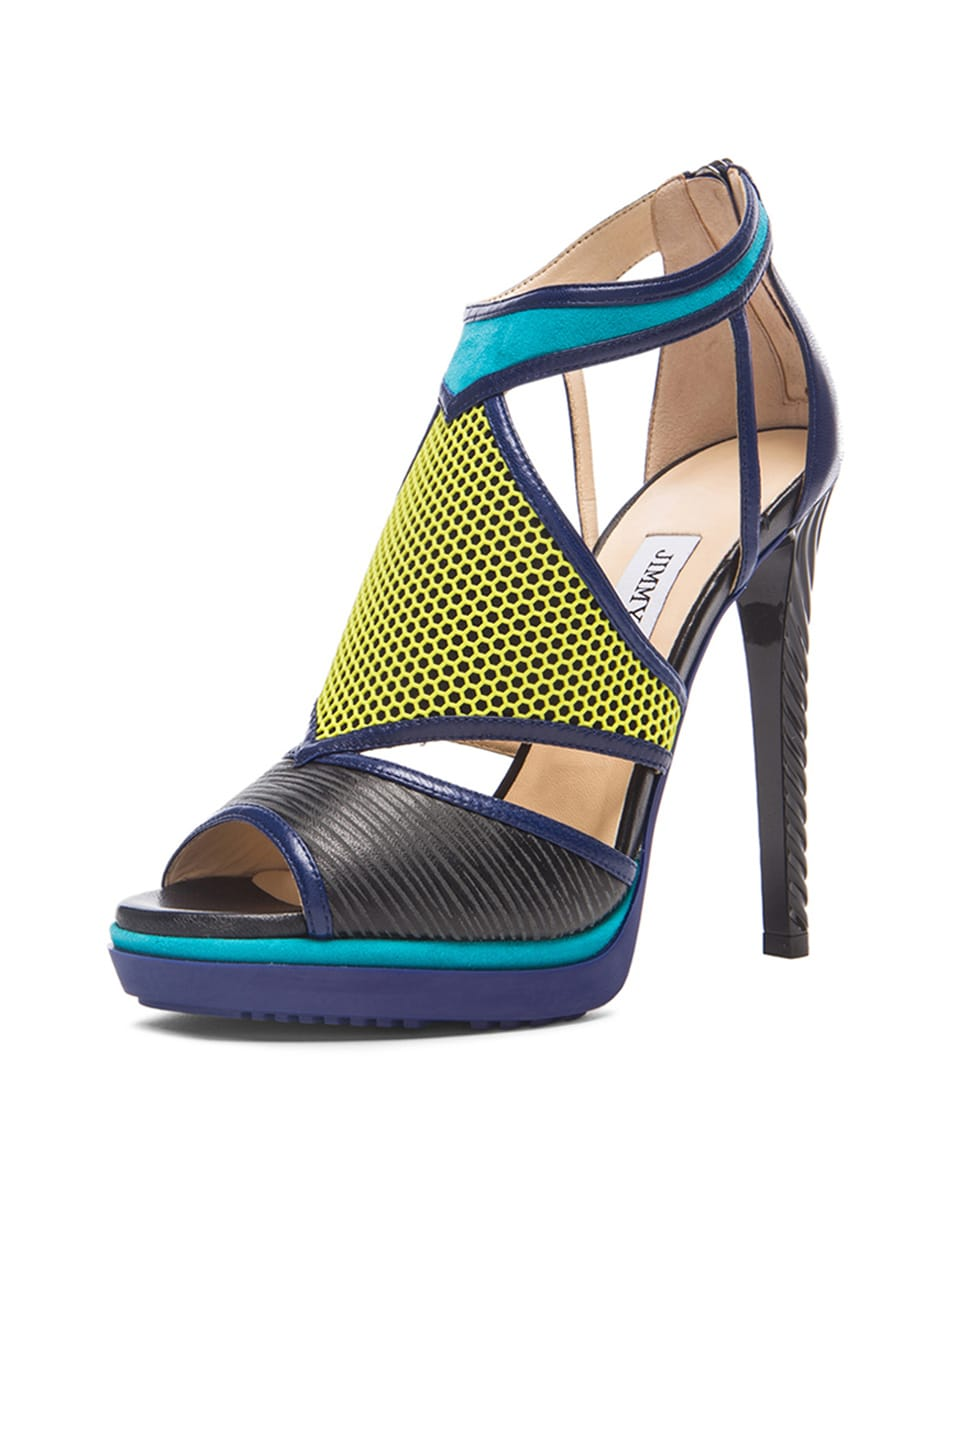 Image 2 of Jimmy Choo Lythe Leather Heels in Acid Yellow, Black & Turquoise